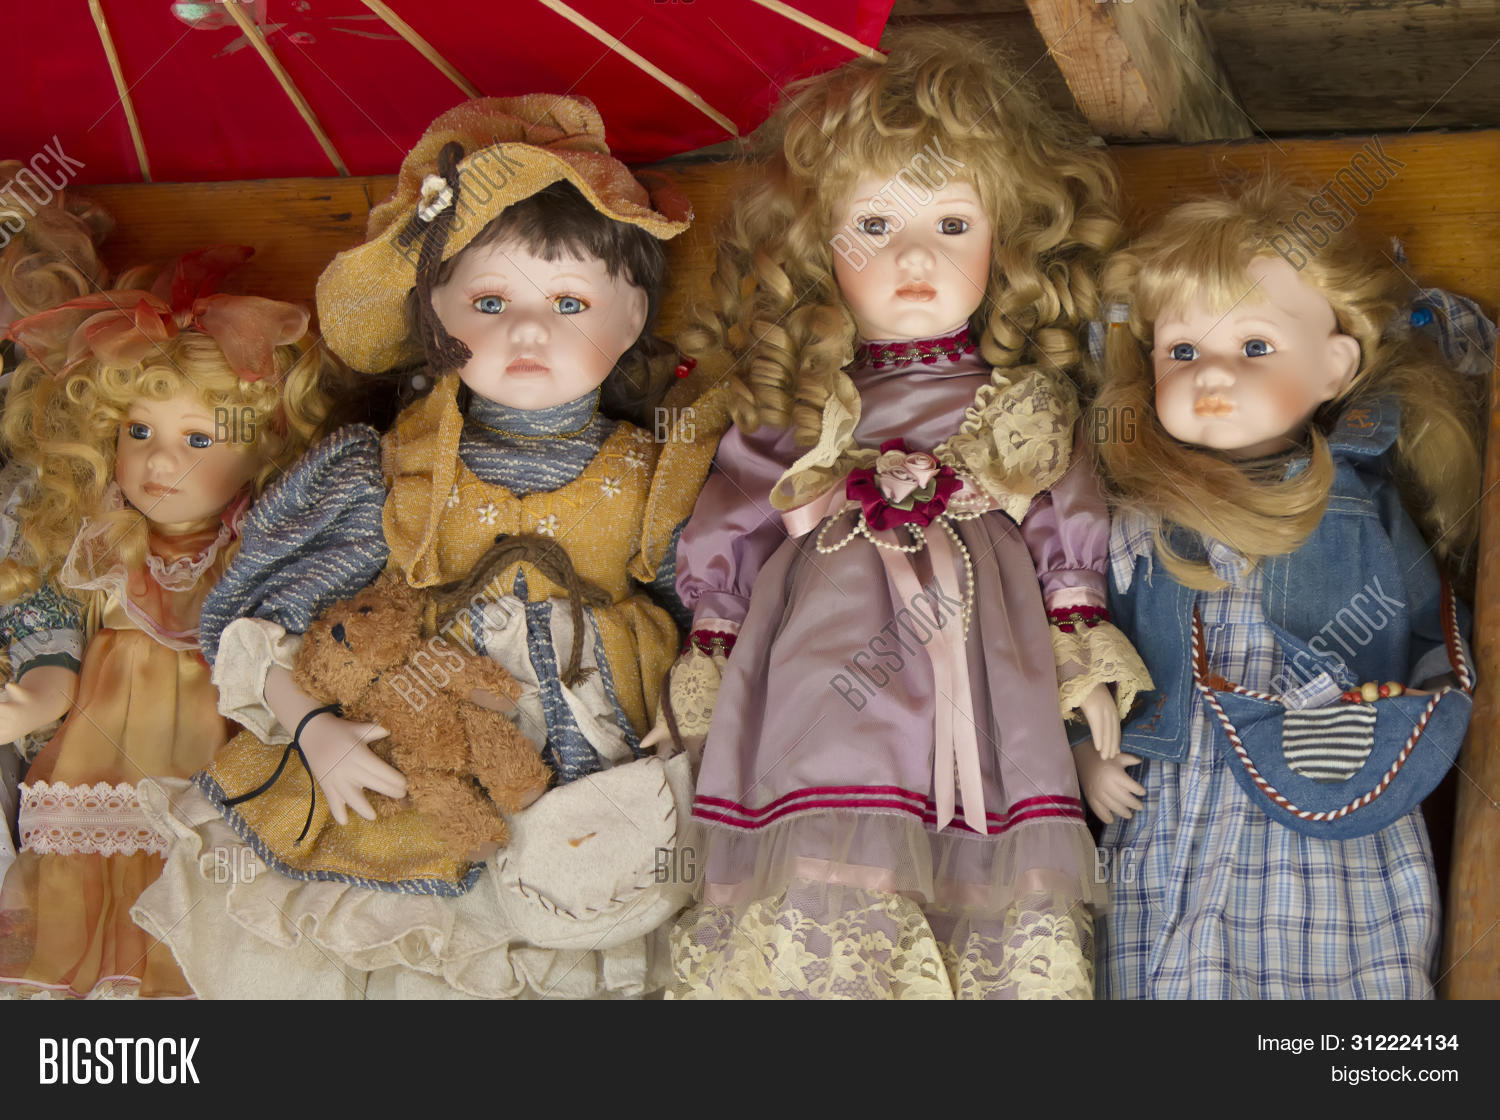 Antique Dolls Image Photo